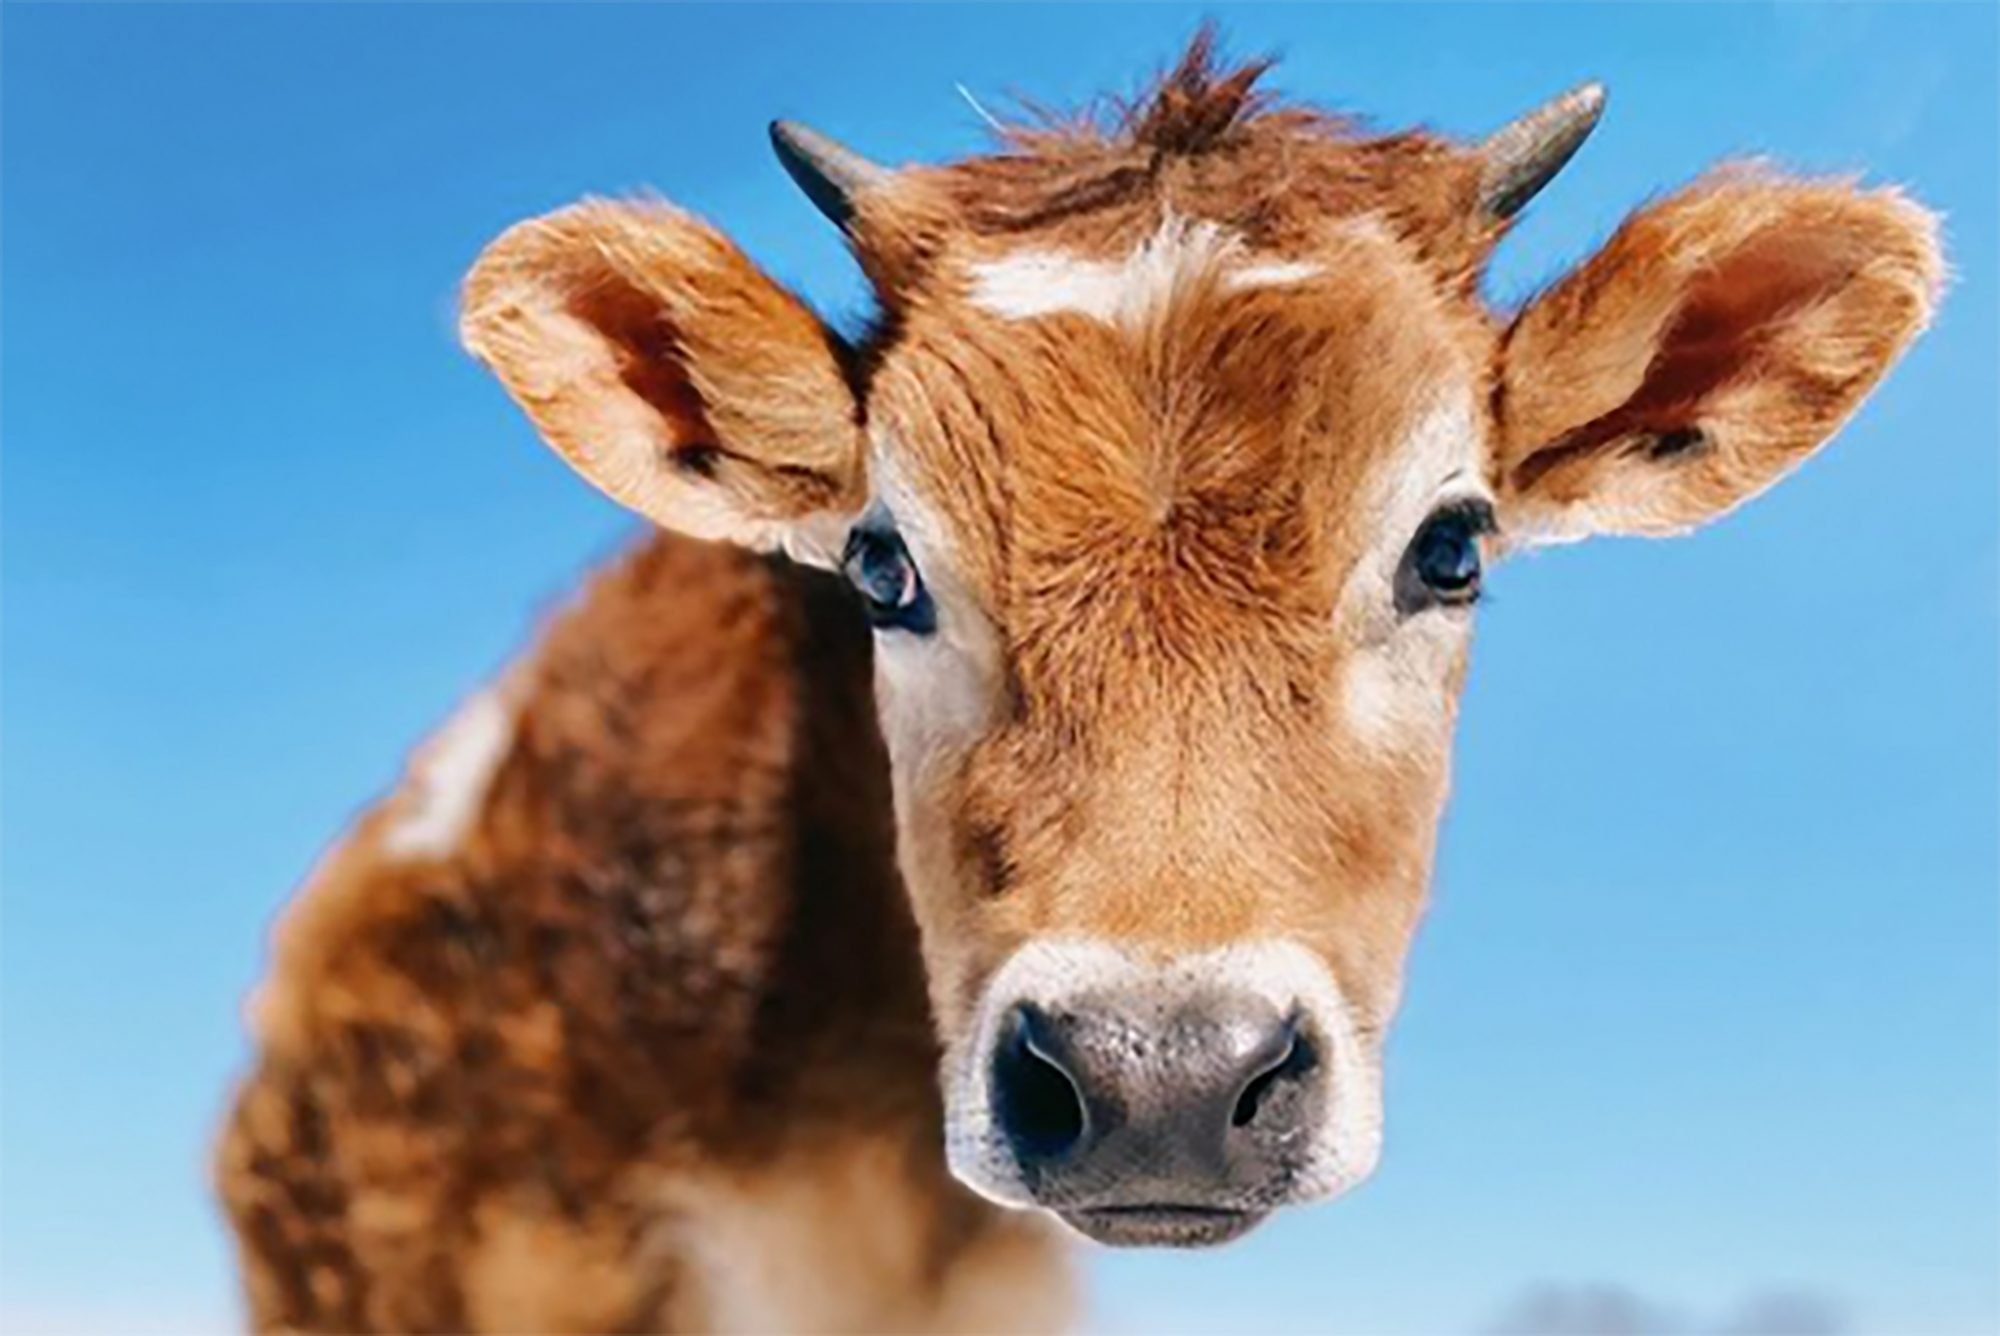 Headshot of tan calf against blue sky